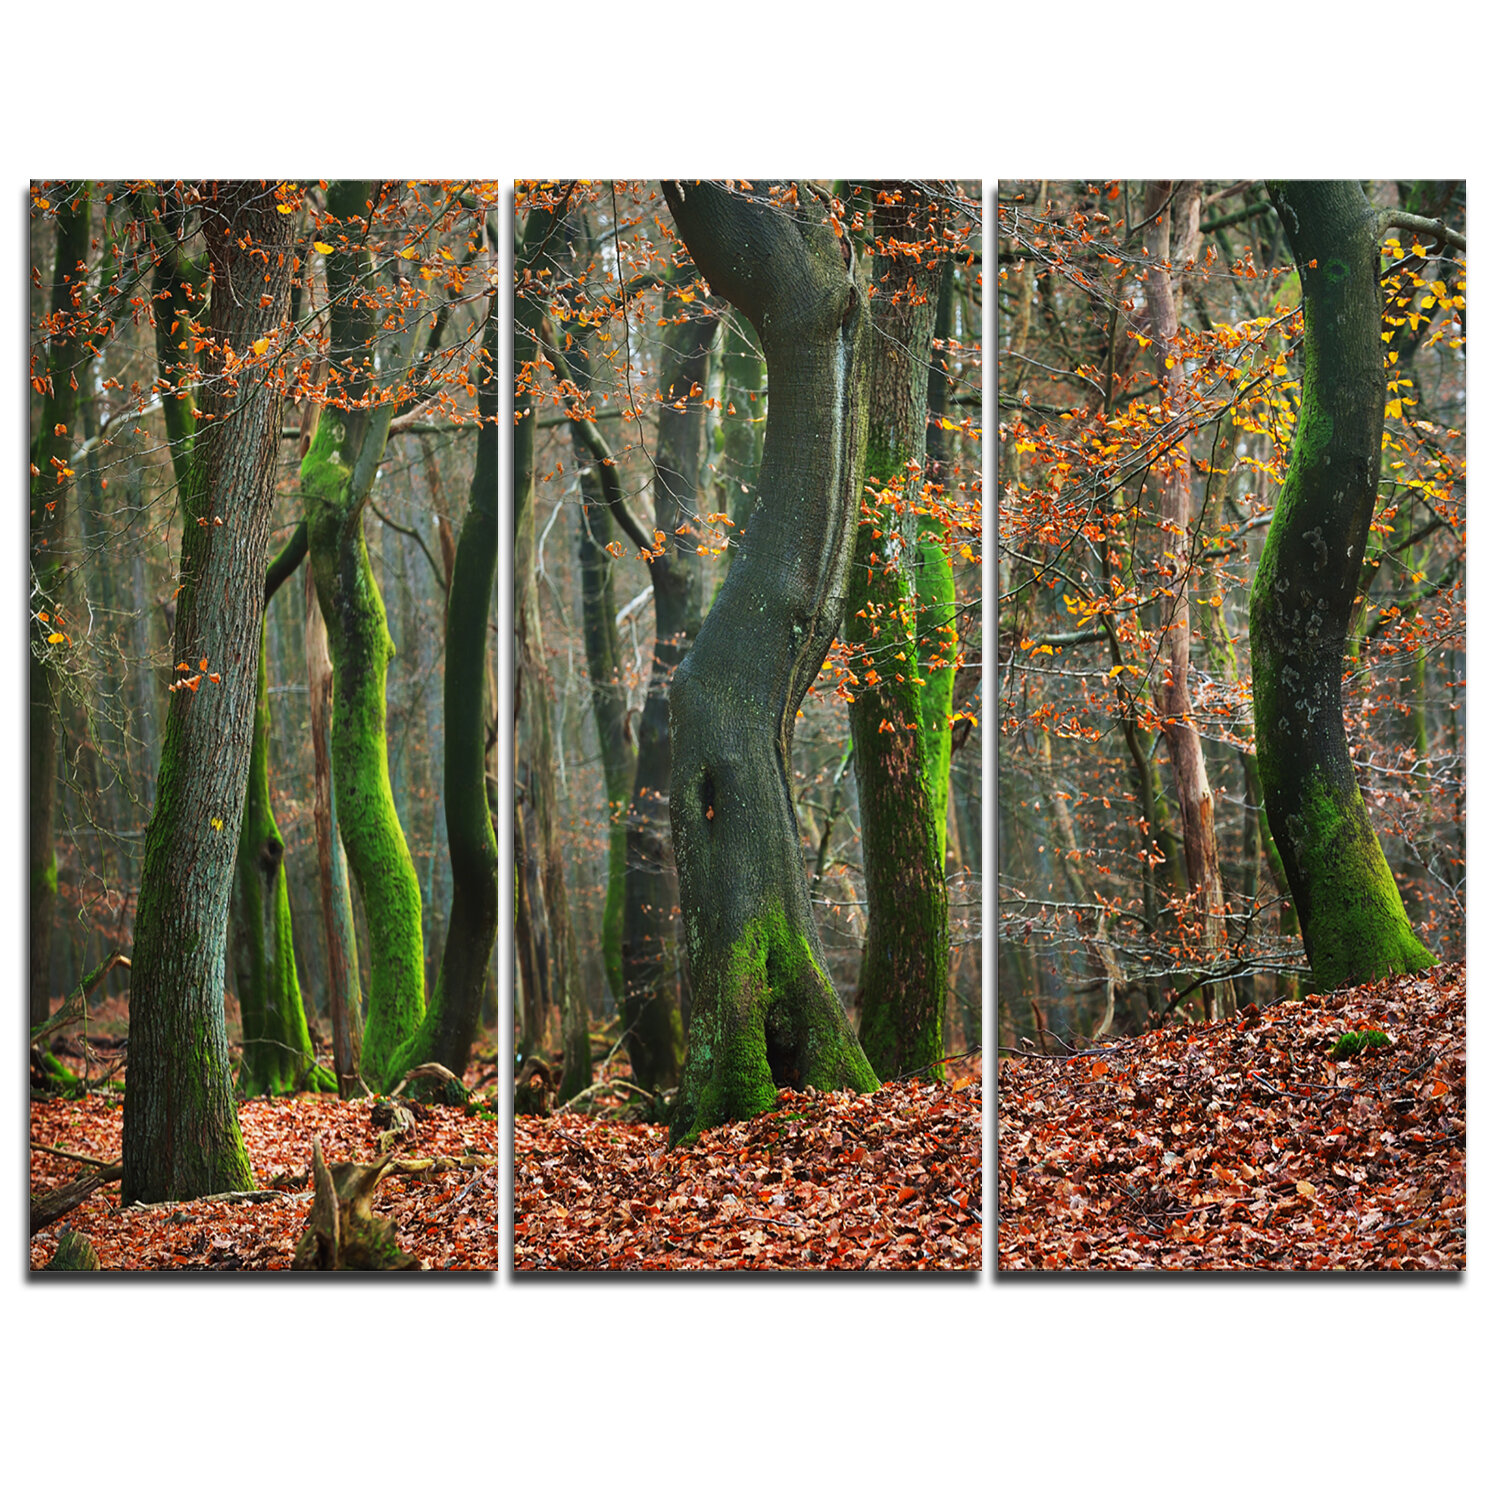 Designart Autumn Forest In The Netherlands 3 Piece Graphic Art On Wrapped Canvas Set Wayfair